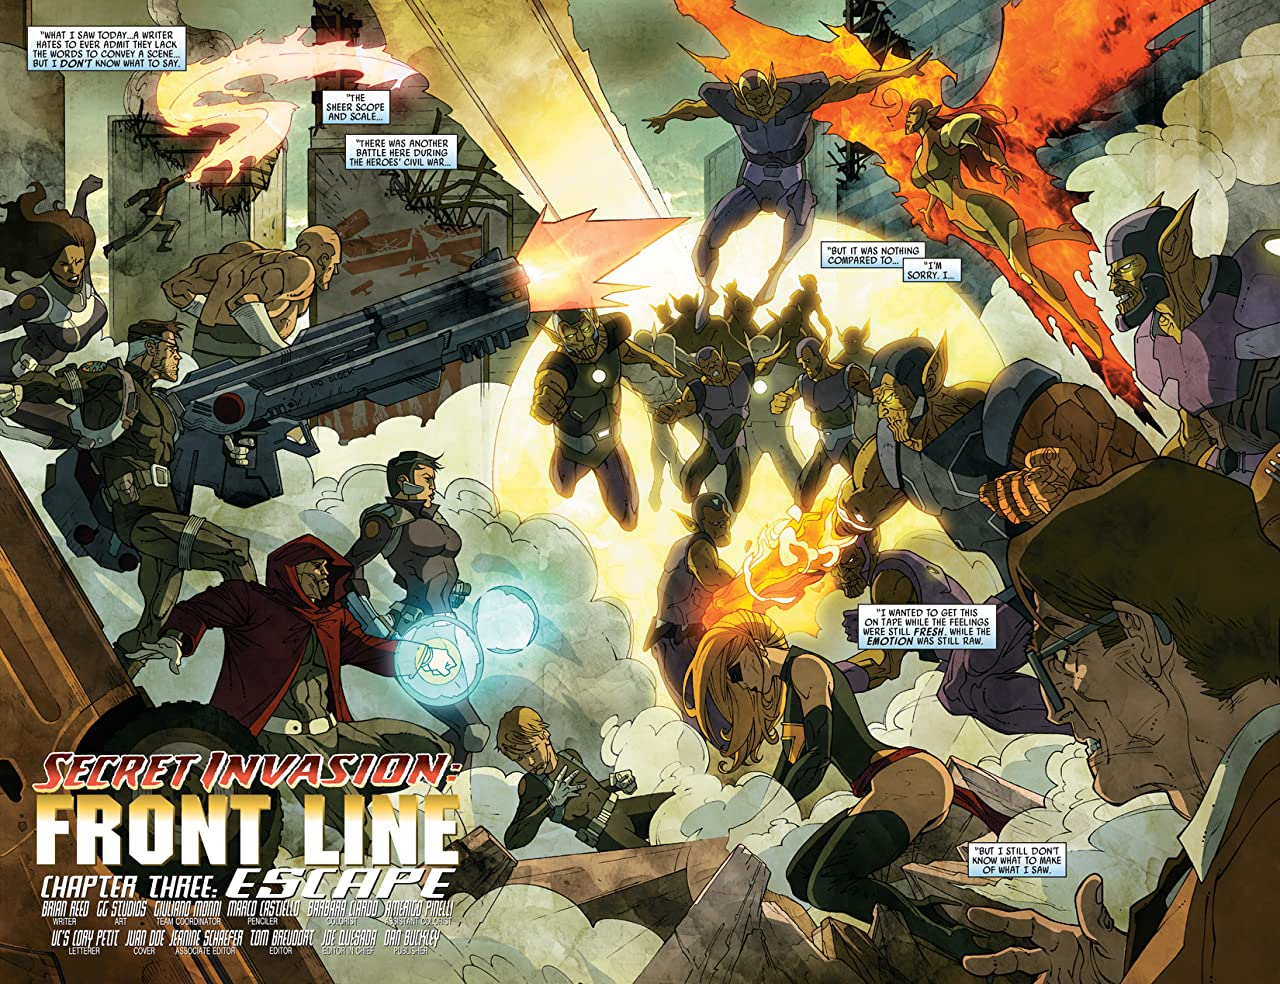 Secret Invasion: Front Line #3 (of 5)